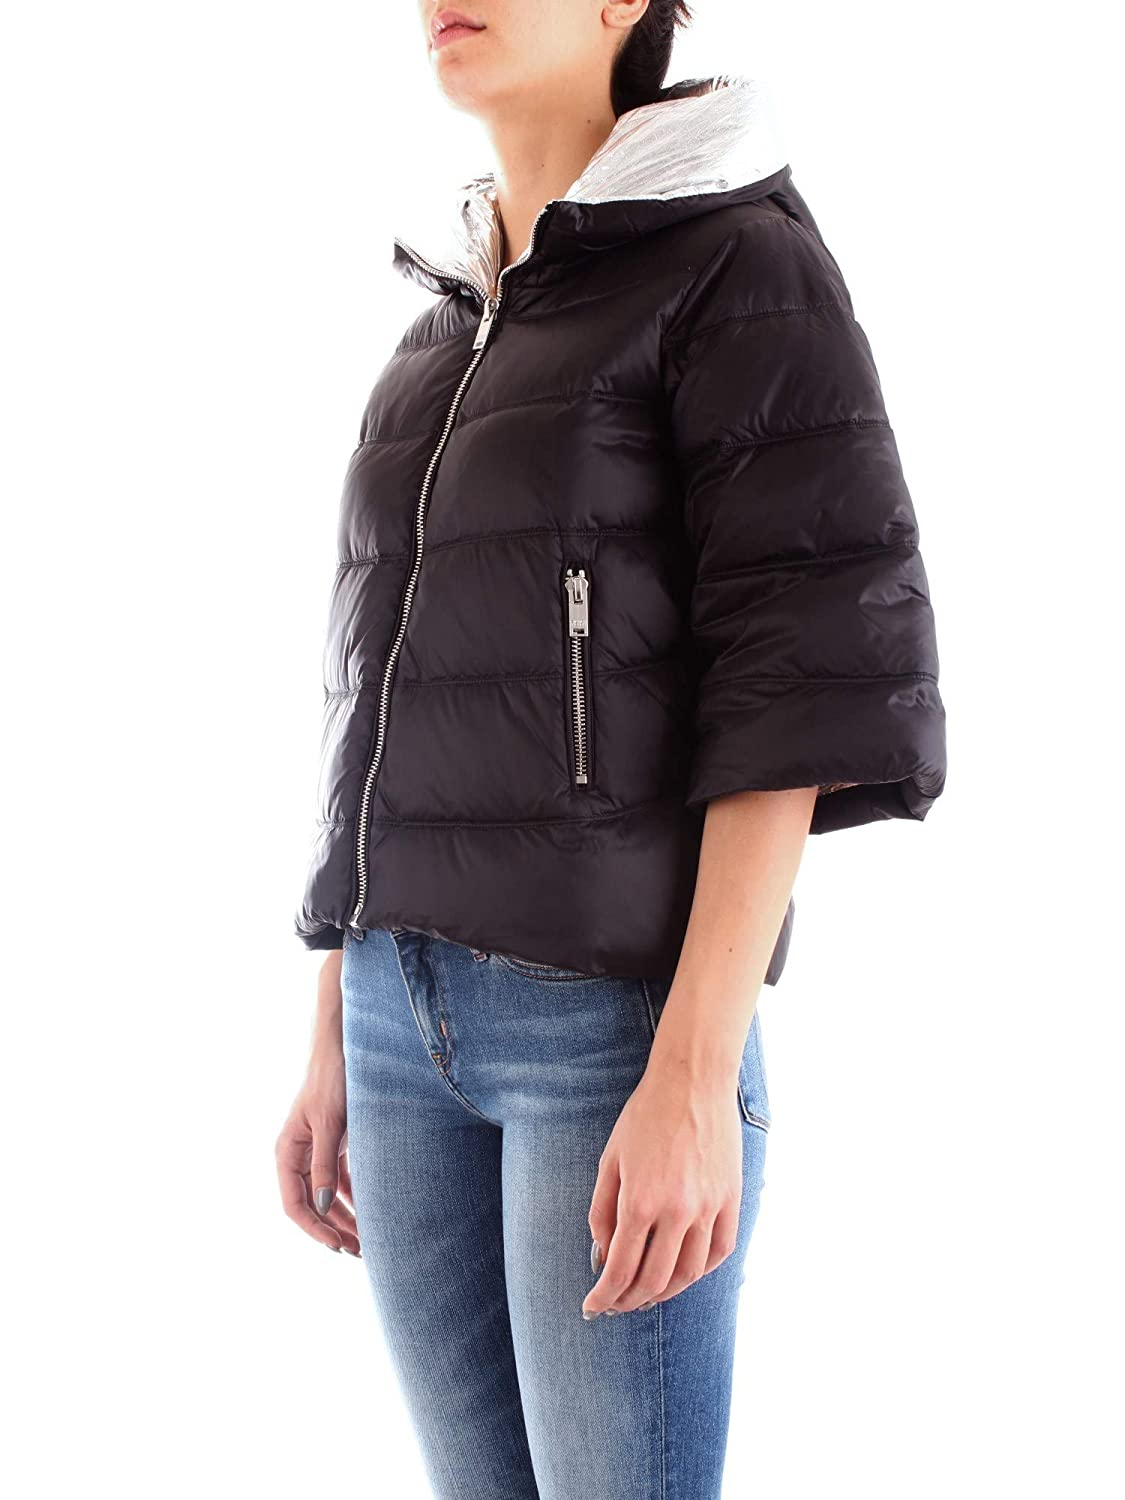 PGA19058PIHB Blk SILVIAN HEACH COLLECTION Giacca Invernale Donna MOD